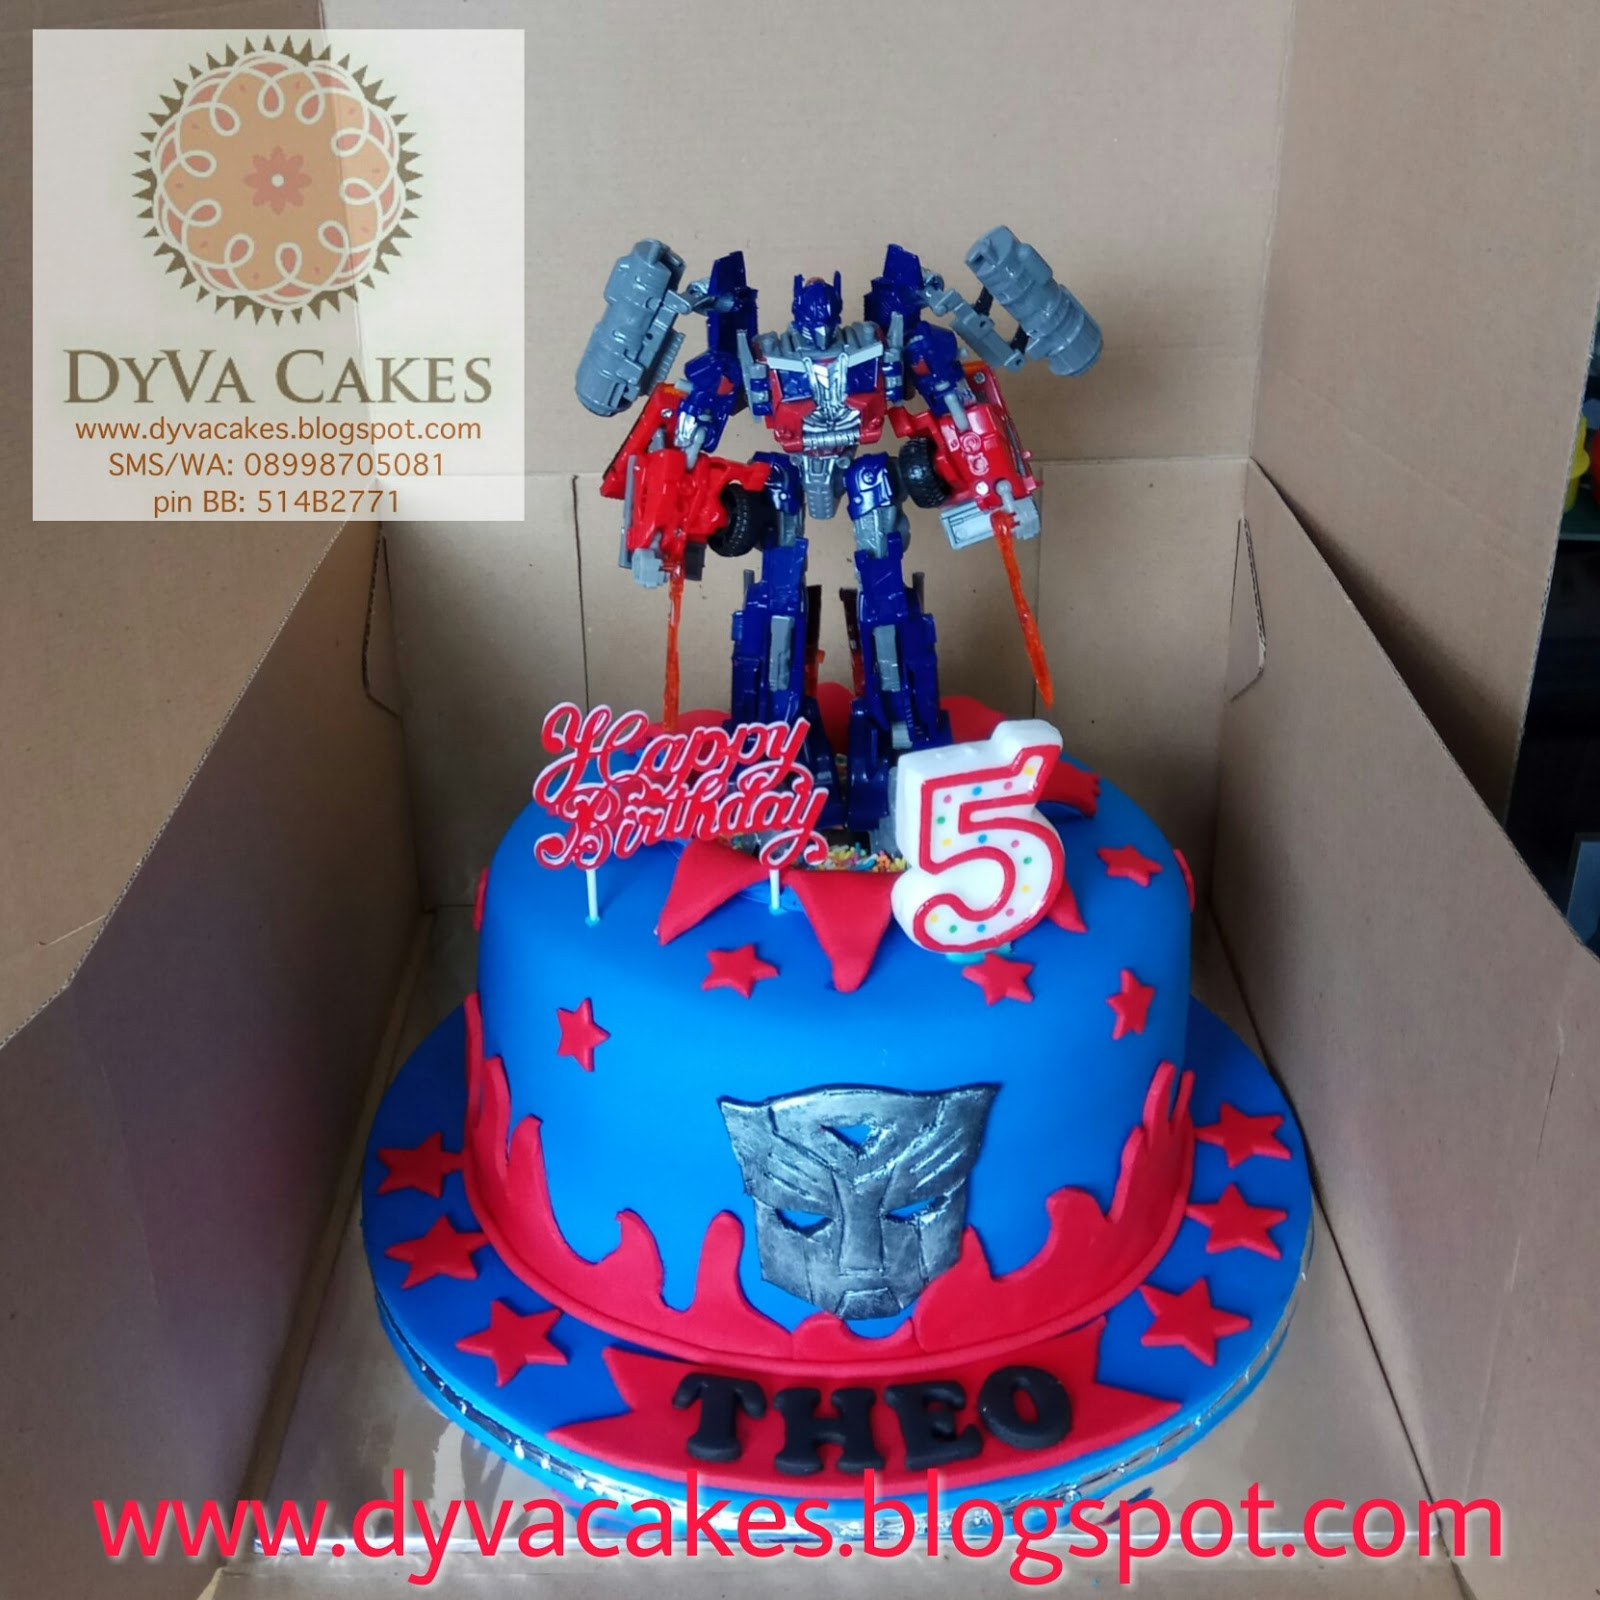 Astounding Dyva Cakes Transformer Optimus Prime Birthday Cake Personalised Birthday Cards Paralily Jamesorg